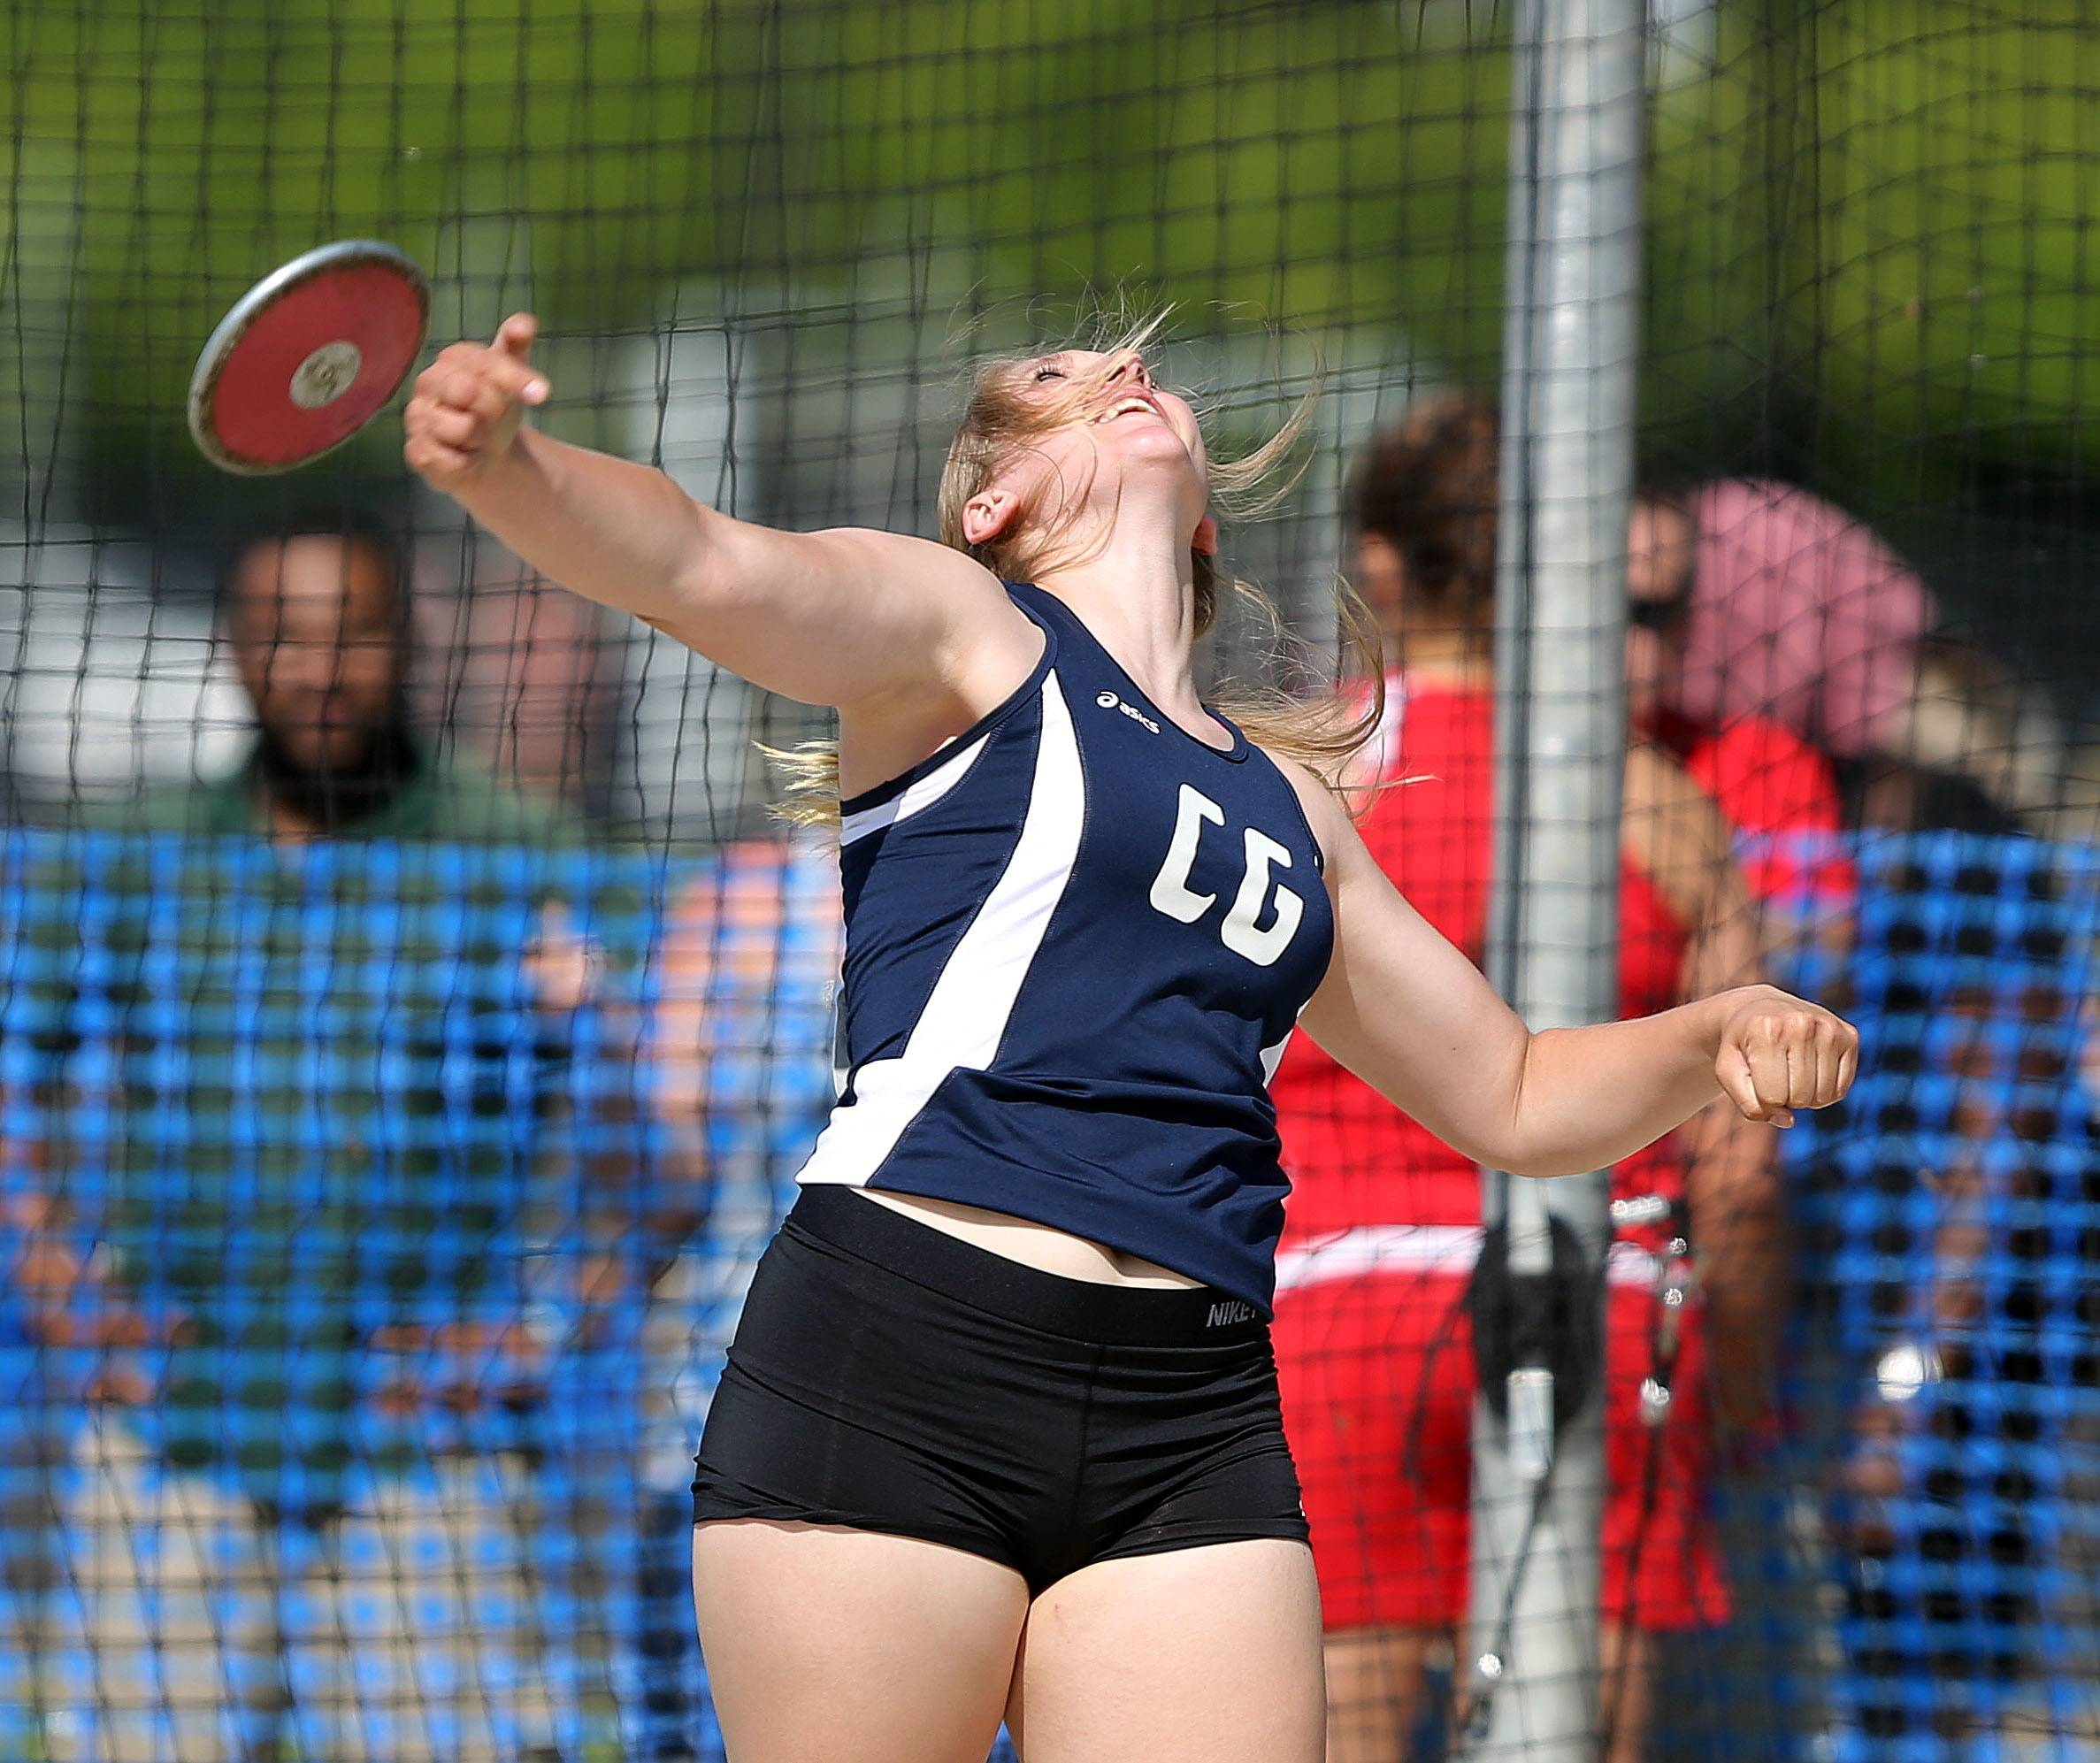 Cary-Grove's Nikki Freeman competes in the discus during the Class 3A prelims.